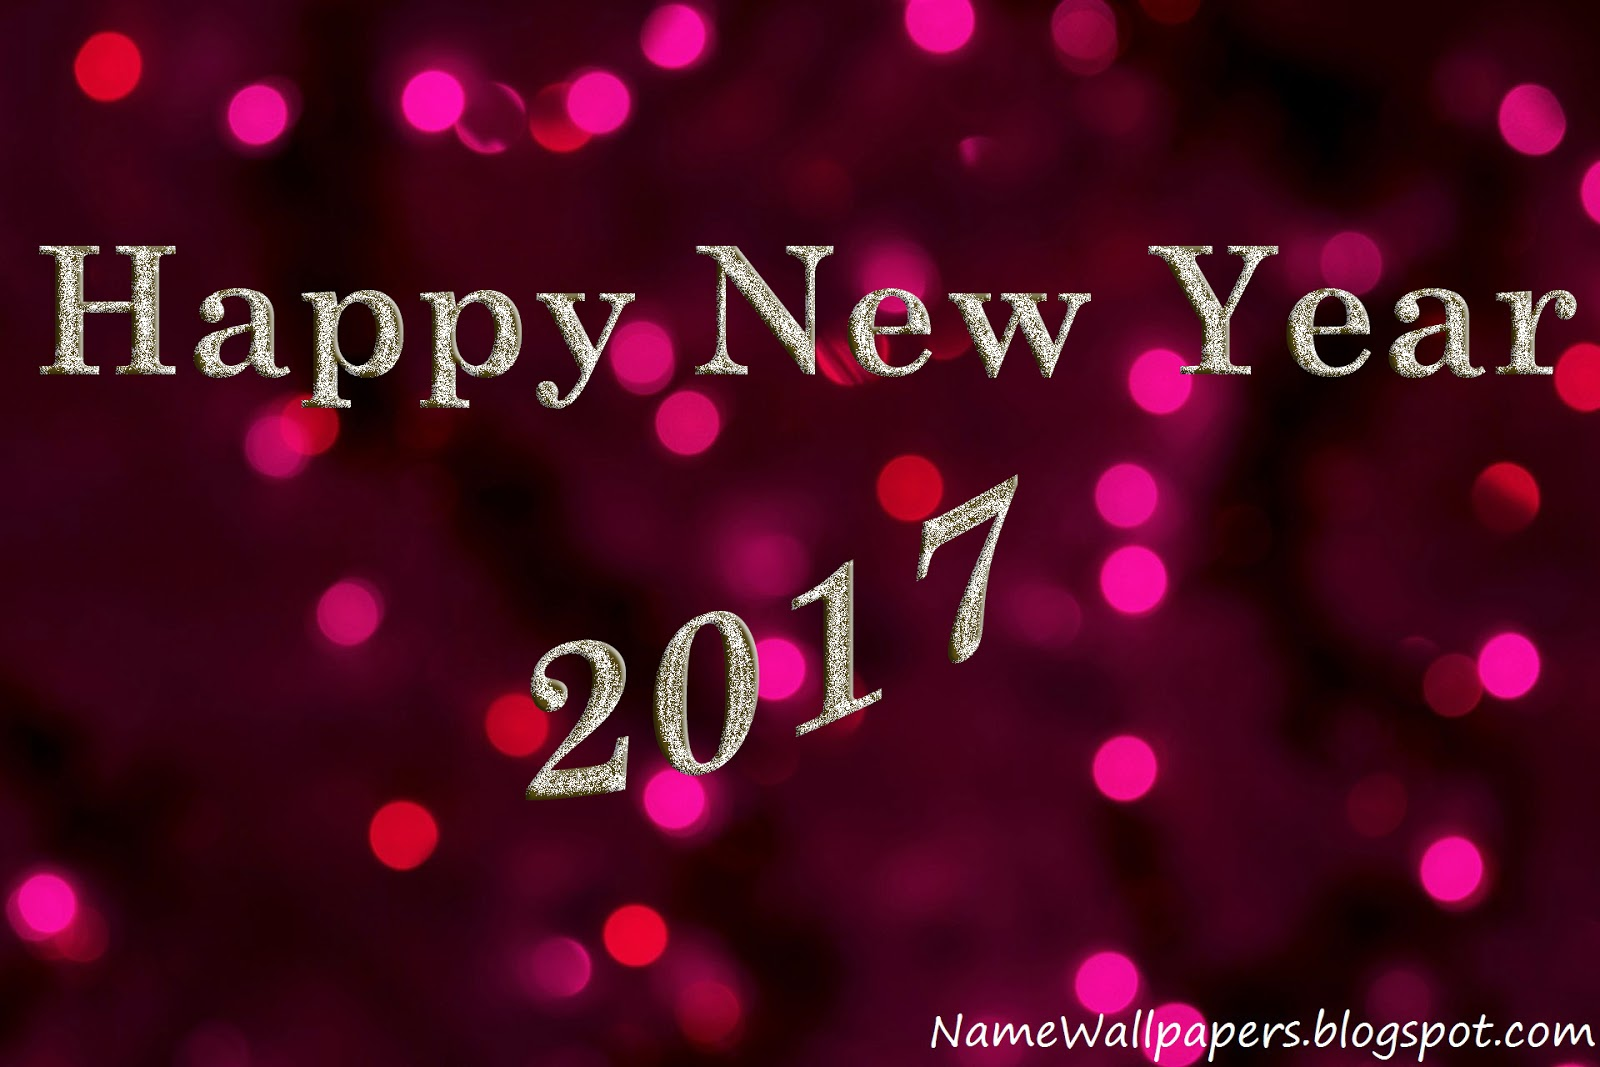 Happy New Year 2017 Wallpapers HD Images Pictures 2017 ...